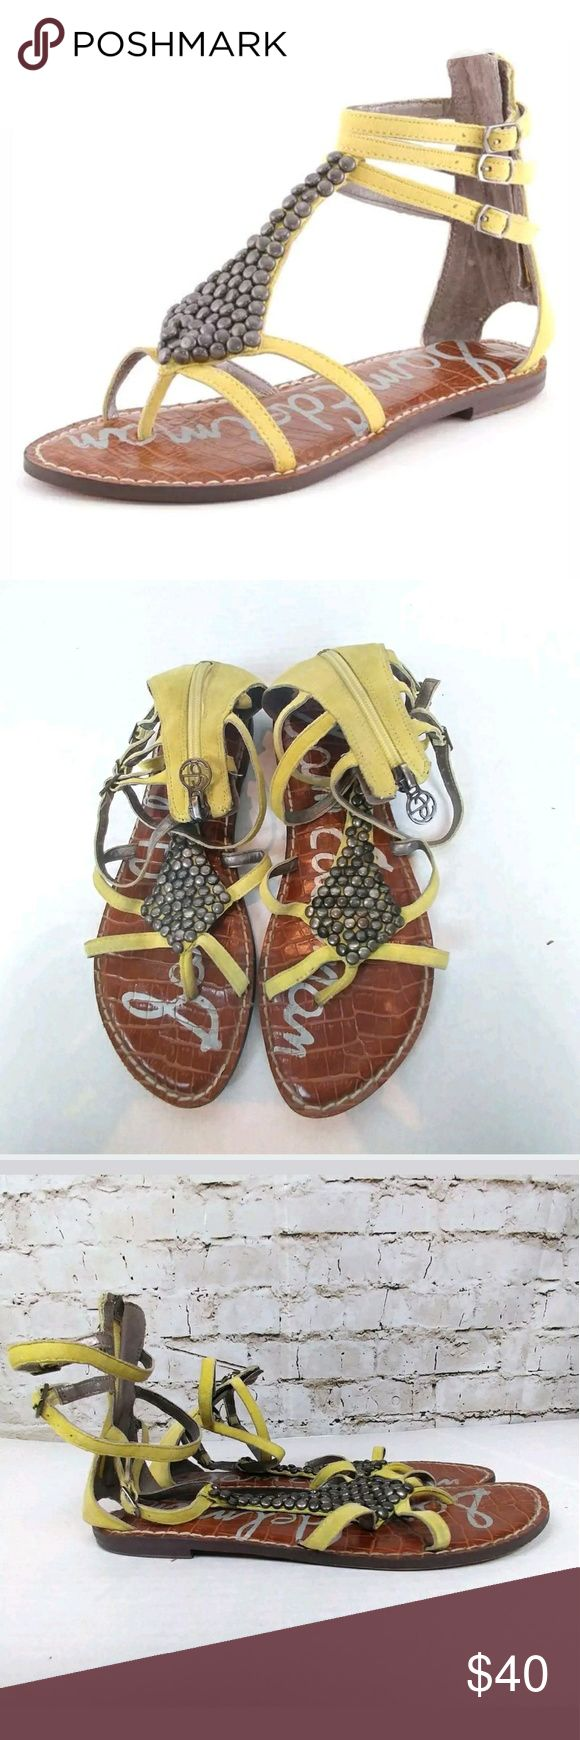 """Sam Edelman Gladiators Yellow Ginger Zip Sandals Sam Edelman Style """"Ginger""""  Womens Shoe Size 8 Yellow Leather Strappy Ankle Gladiator Zip Up Fashion Sandals  GOOD Pre-Owned Condition: PLEASE REVIEW PHOTOS they are a part of my description Sam Edelman Shoes Sandals"""